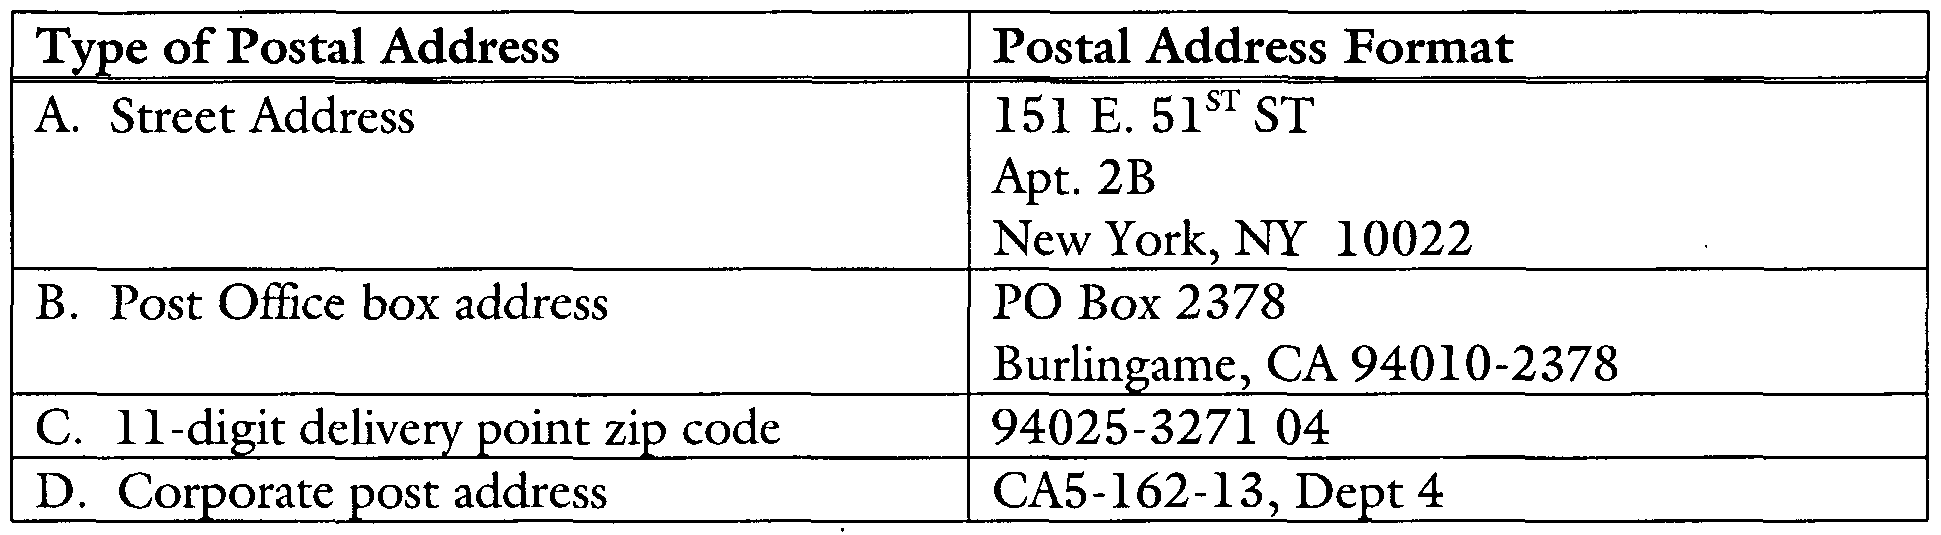 wo2002051051a1 - registration based mail-addressing system - google